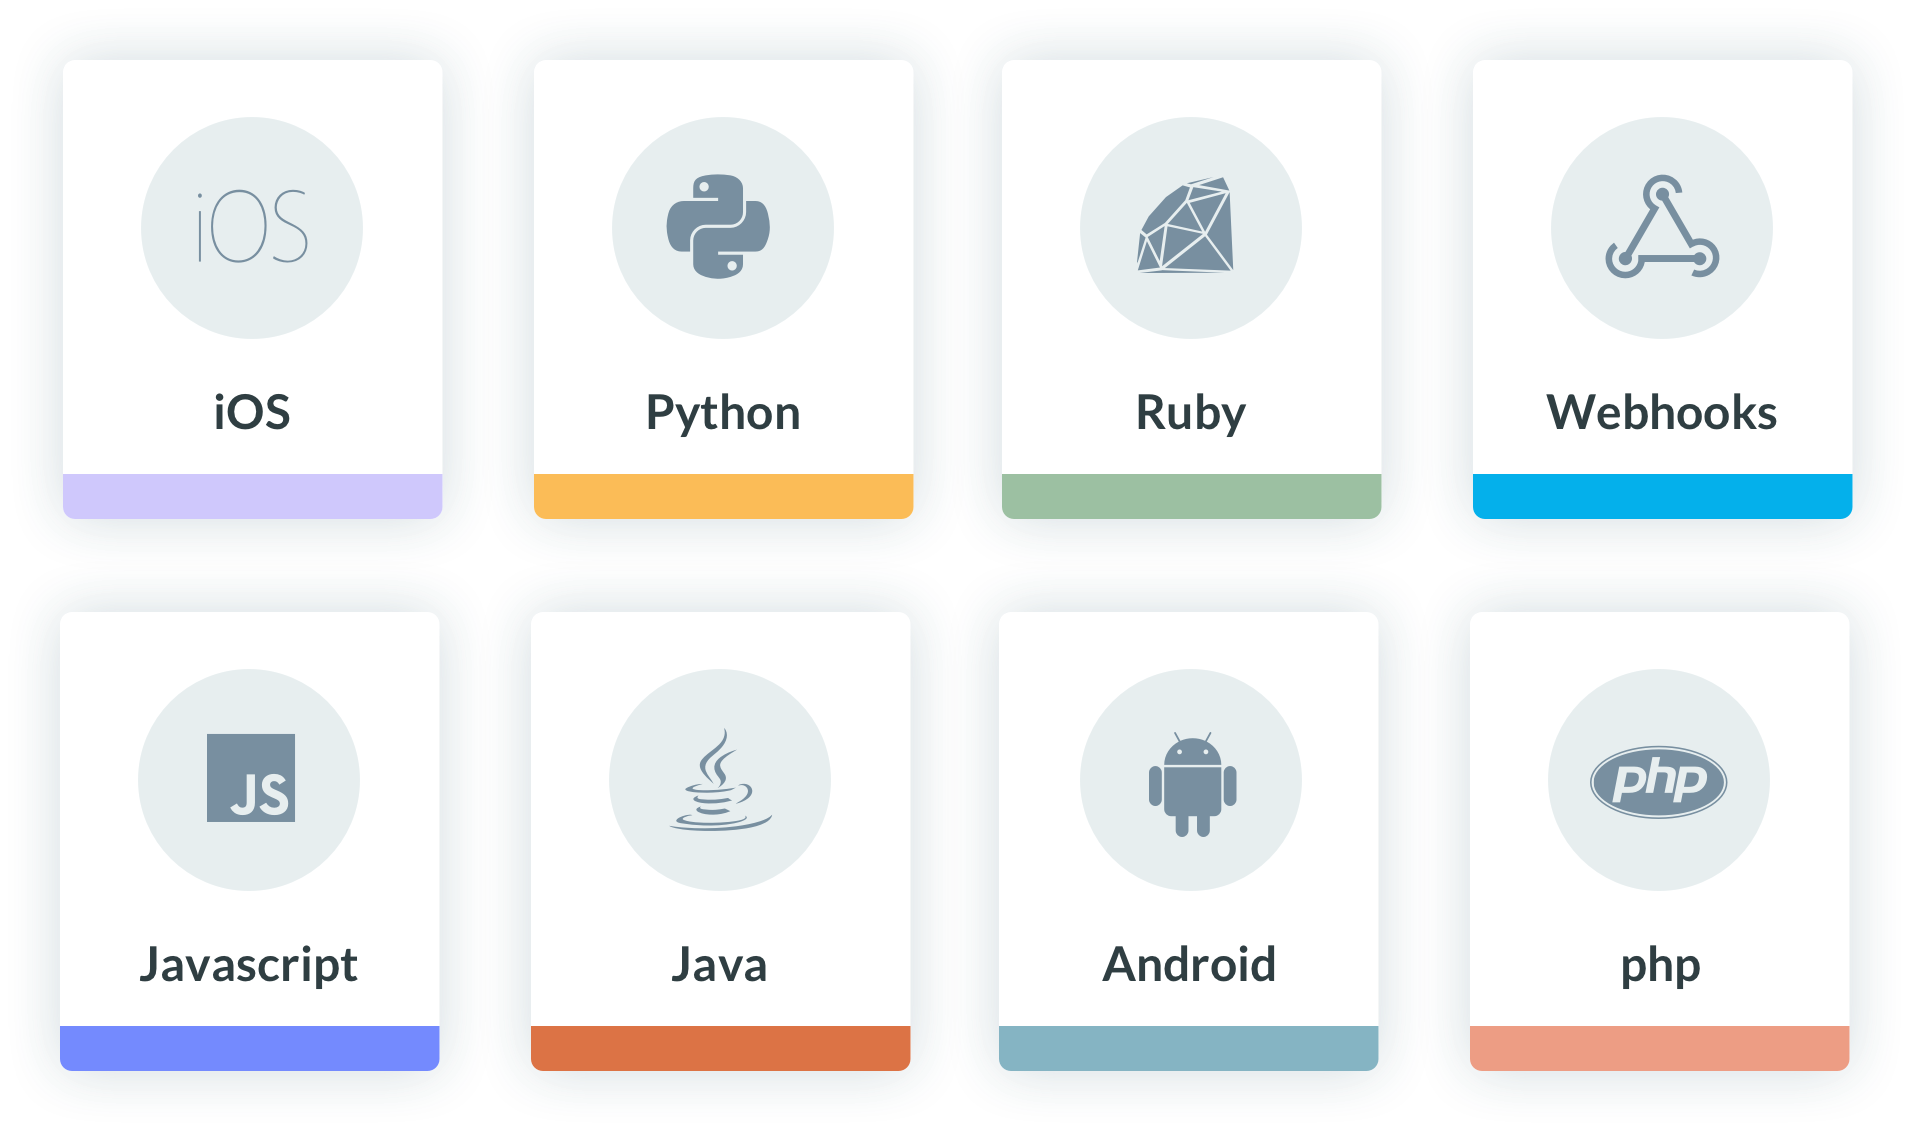 Some sources of event streaming for Keen: iOs, Python, Ruby, PHP, to name a few